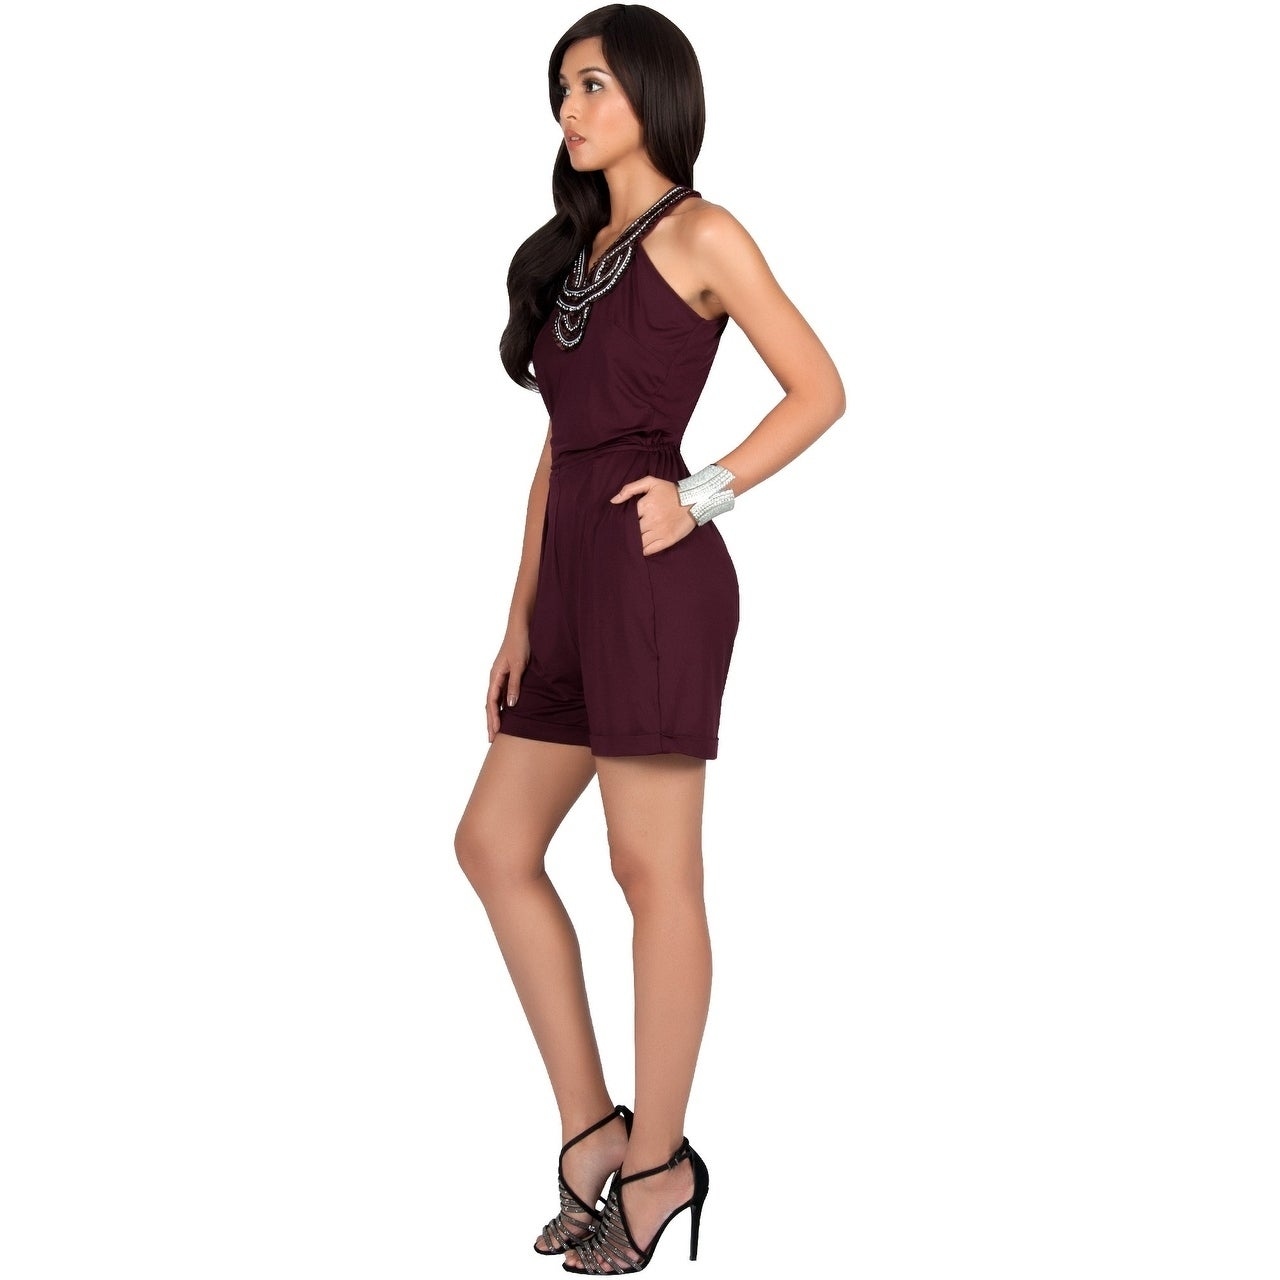 be1167c74543 Shop KOH KOH Womens Sleeveless Beach Summer Sexy Cute Short Romper Jumpsuit  - Free Shipping Today - Overstock - 25455191